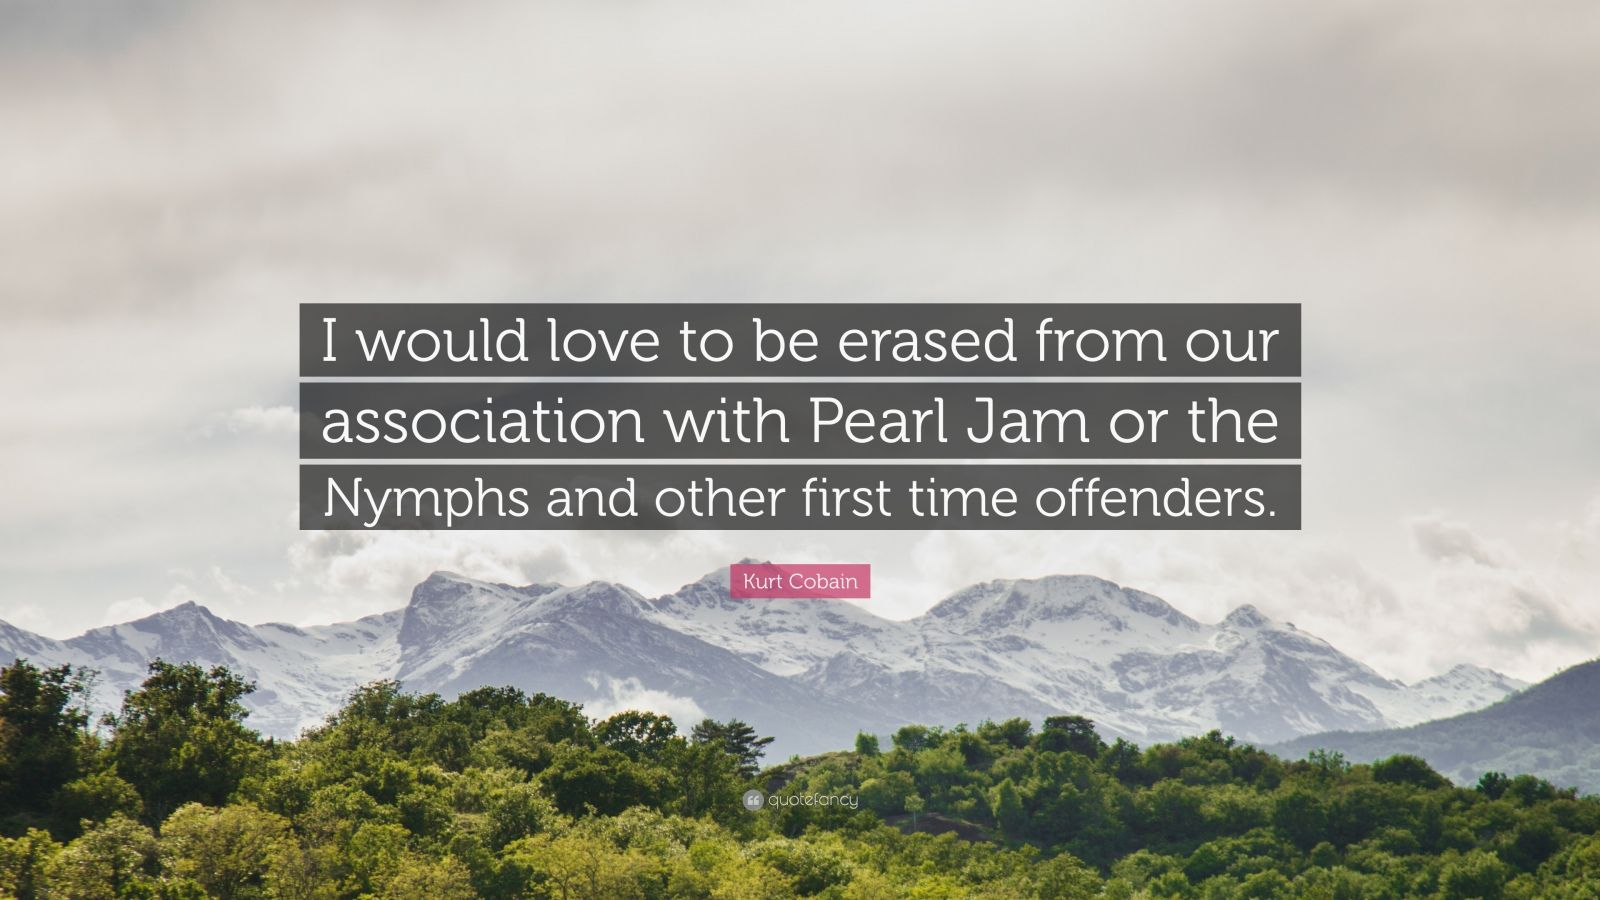 """Kurt Cobain Quote: """"I would love to be erased from our association with Pearl Jam or the Nymphs and other first time offenders."""""""